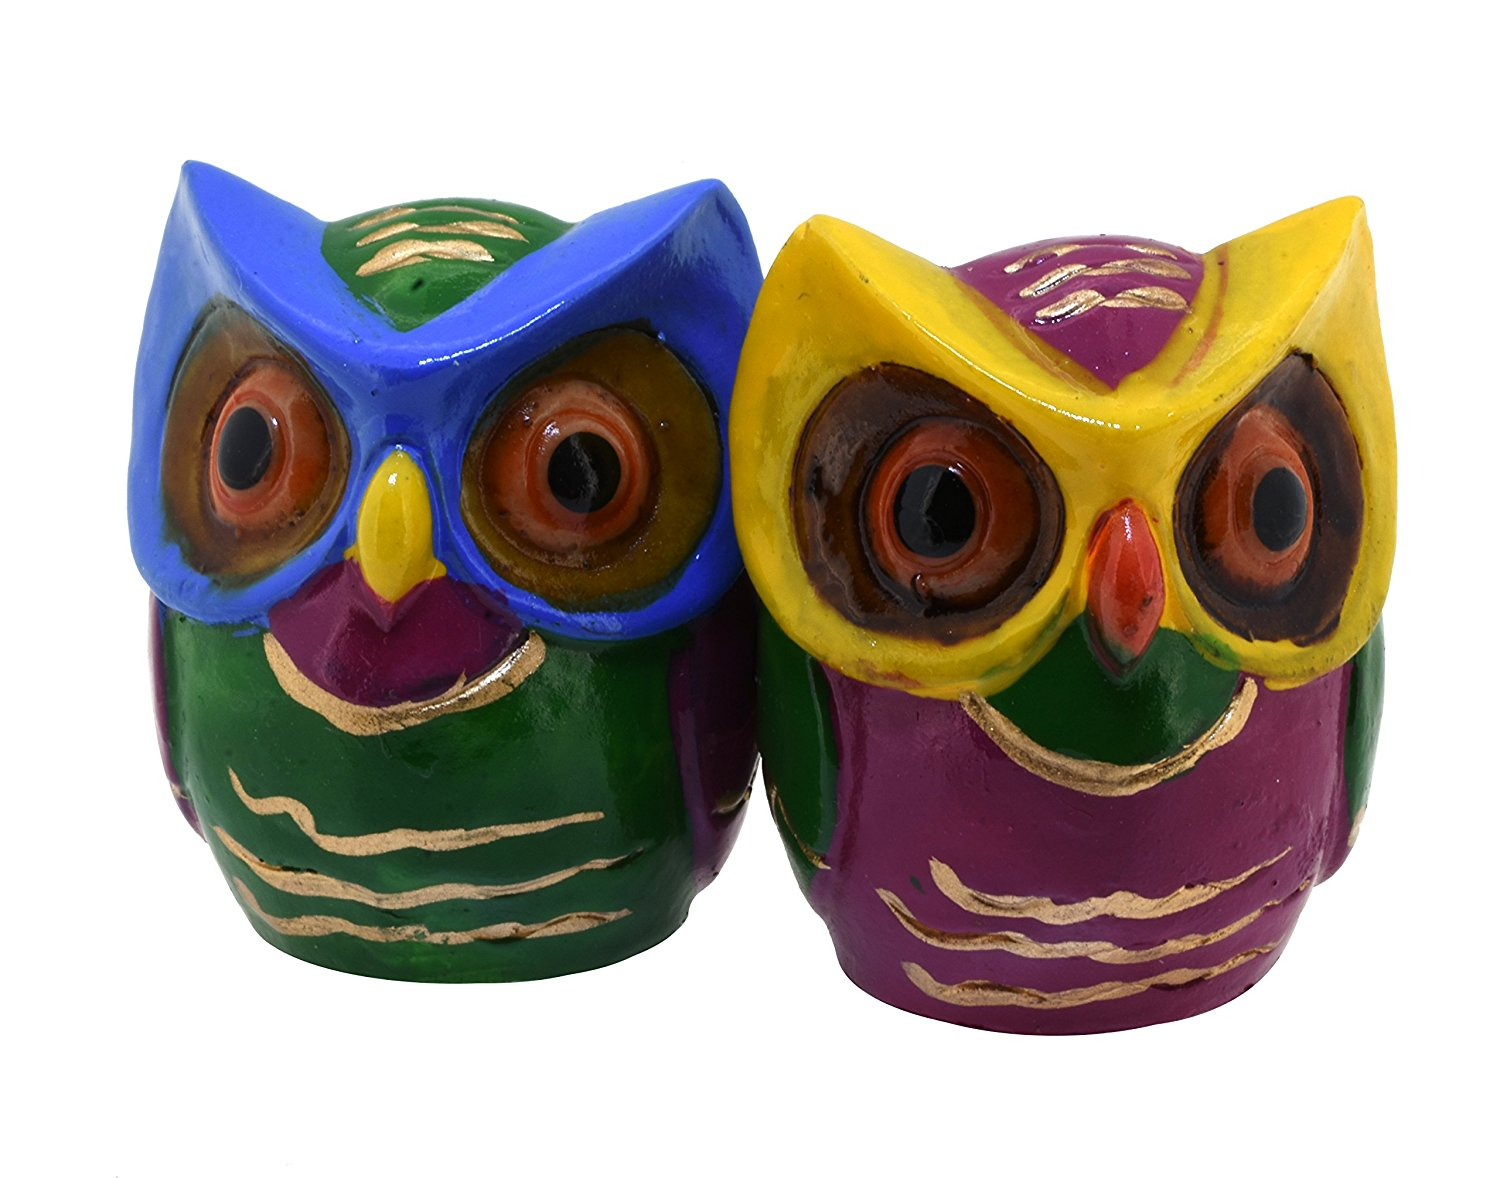 Get Quotations · Pair Of Small Colorful Cute Owl Statues Decorative  Figurines Home Decor (Green U0026 Purple)